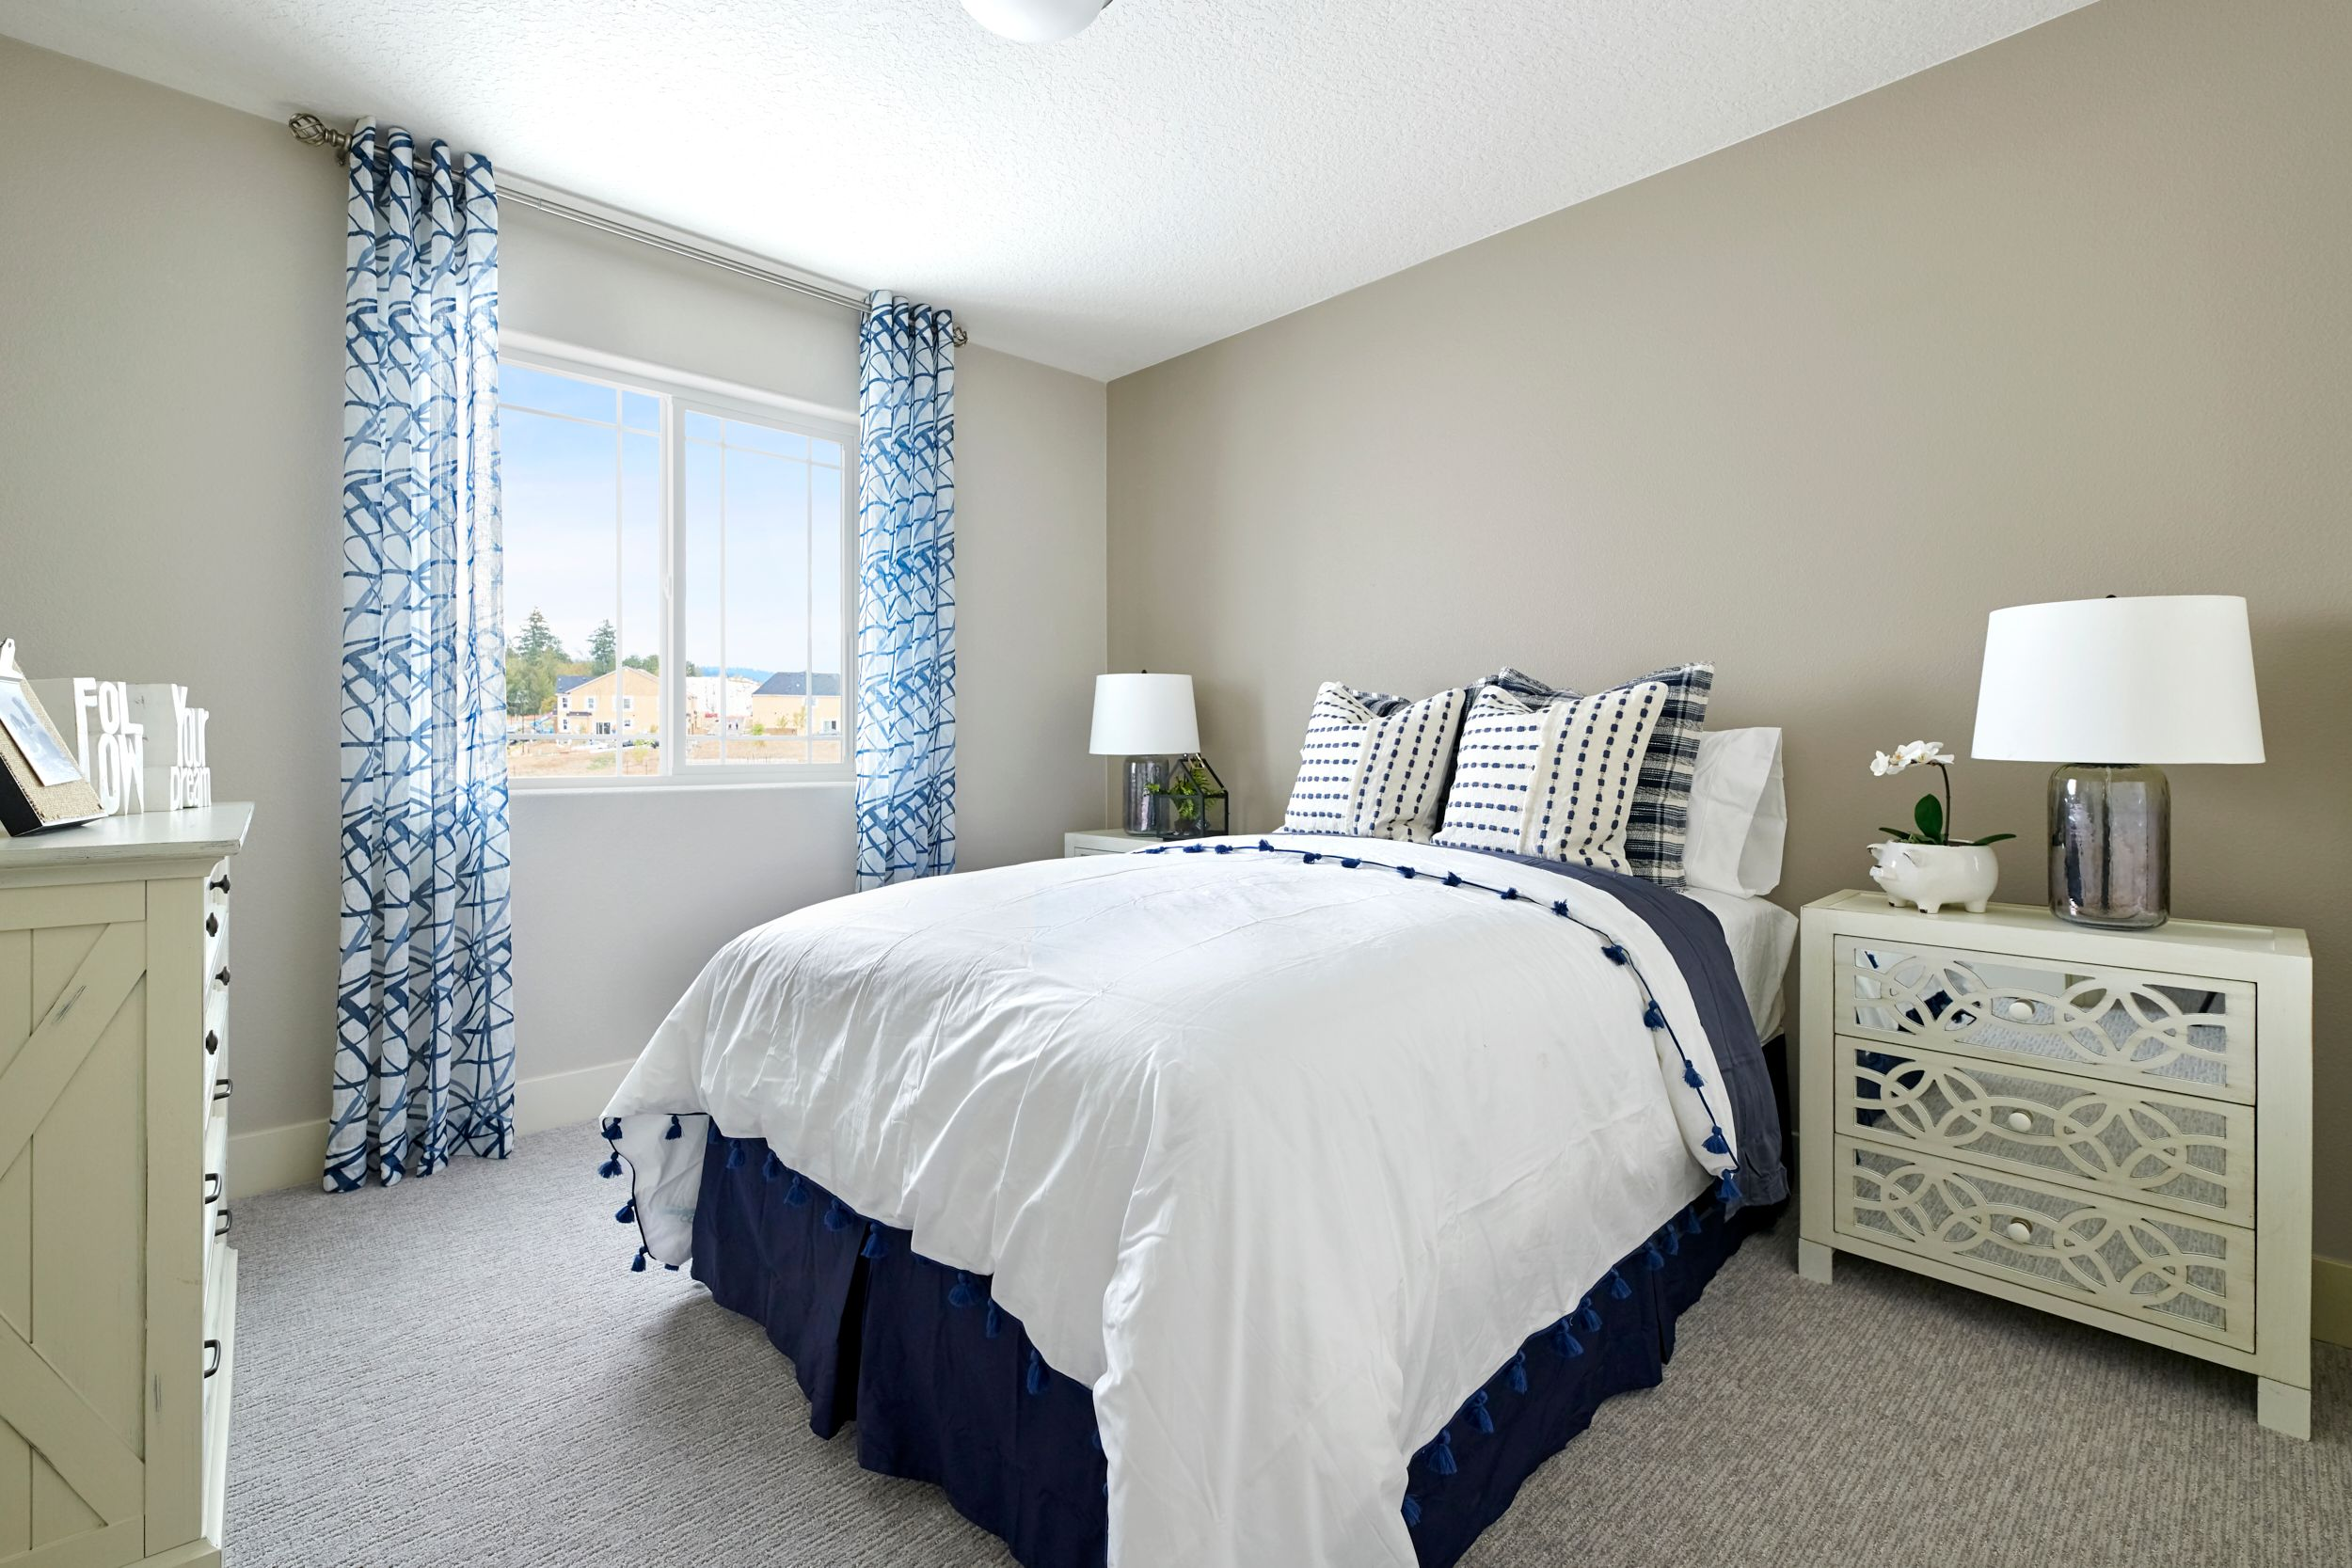 Bedroom featured in the Laurel WLH By Taylor Morrison in Portland-Vancouver, OR